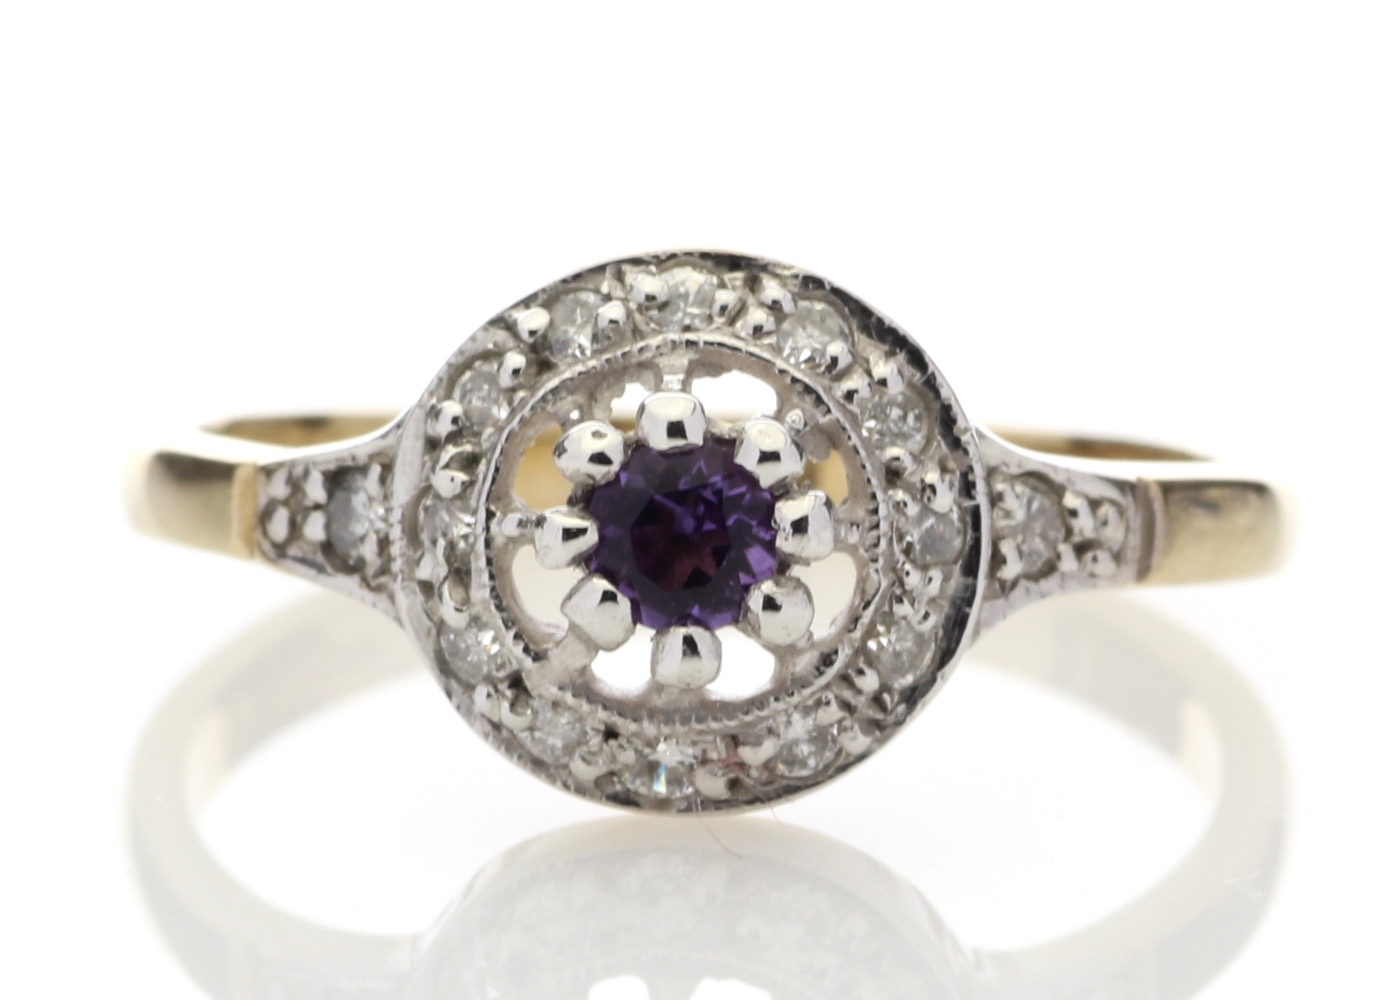 9ct Yellow Gold Round Cluster Claw Set Diamond Amethyst Ring 0.21 Carats